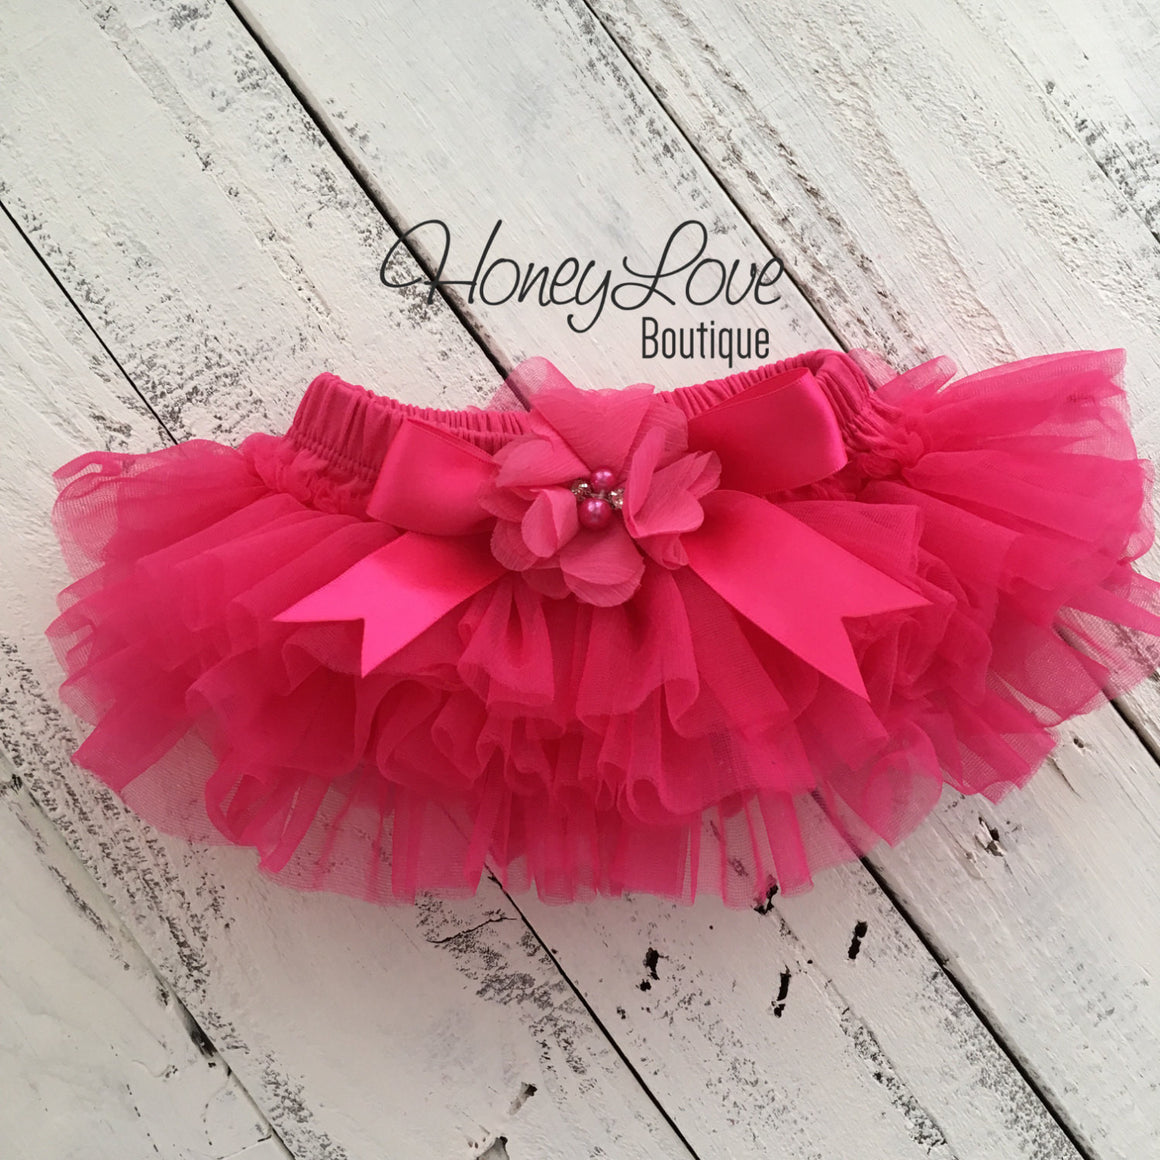 Watermelon Pink tutu skirt bloomers and silver glitter headband - embellished bloomer